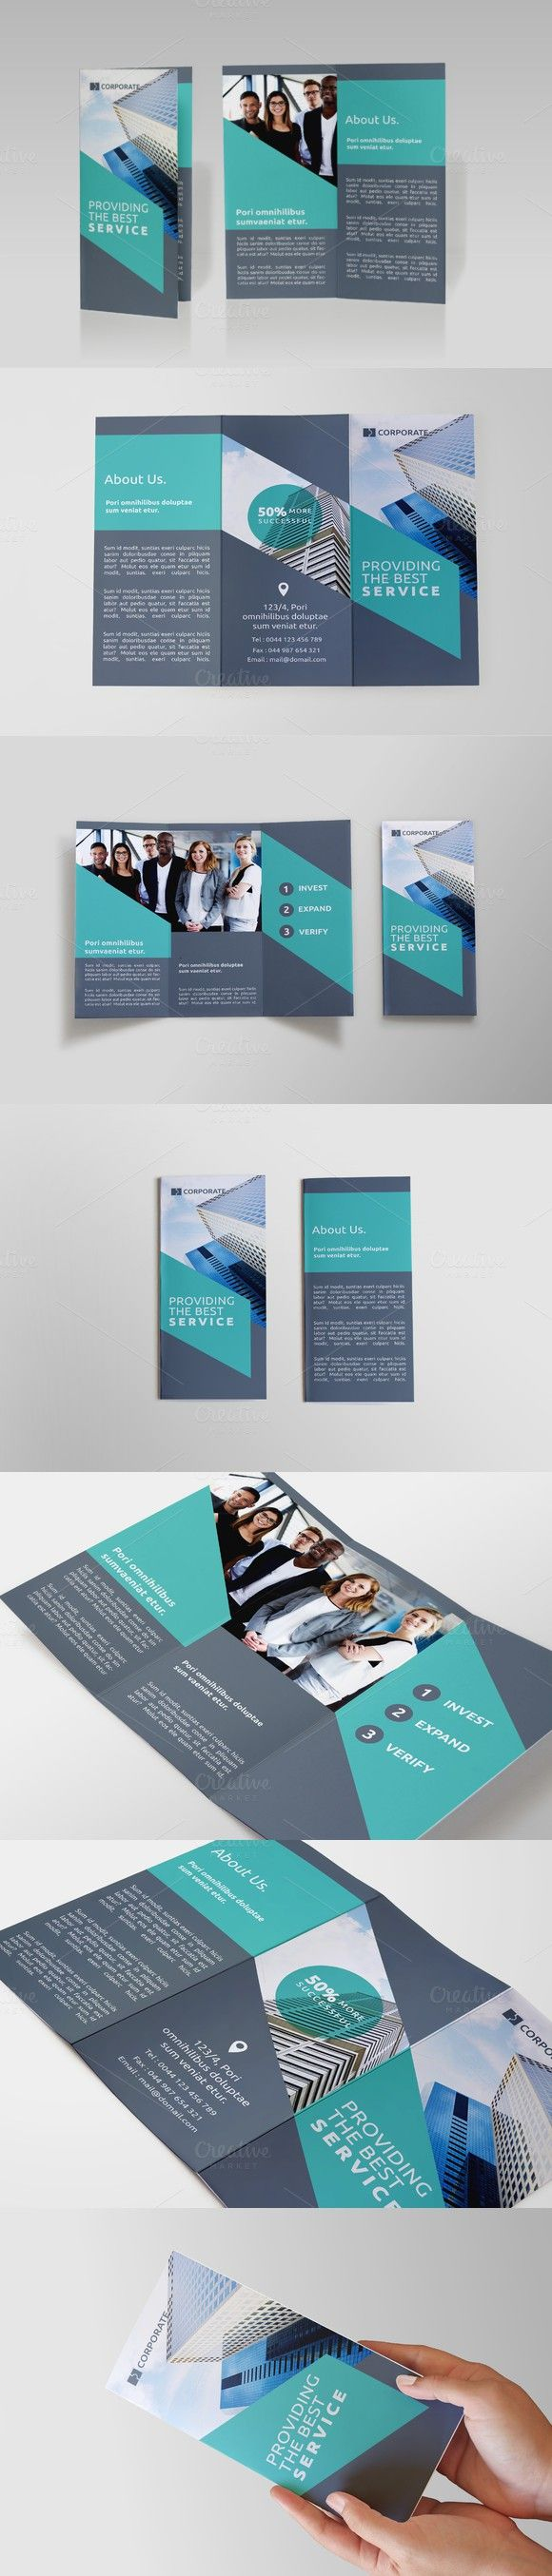 Business Tri-fold Brochure - AAB                                                                                                                                                                                 More